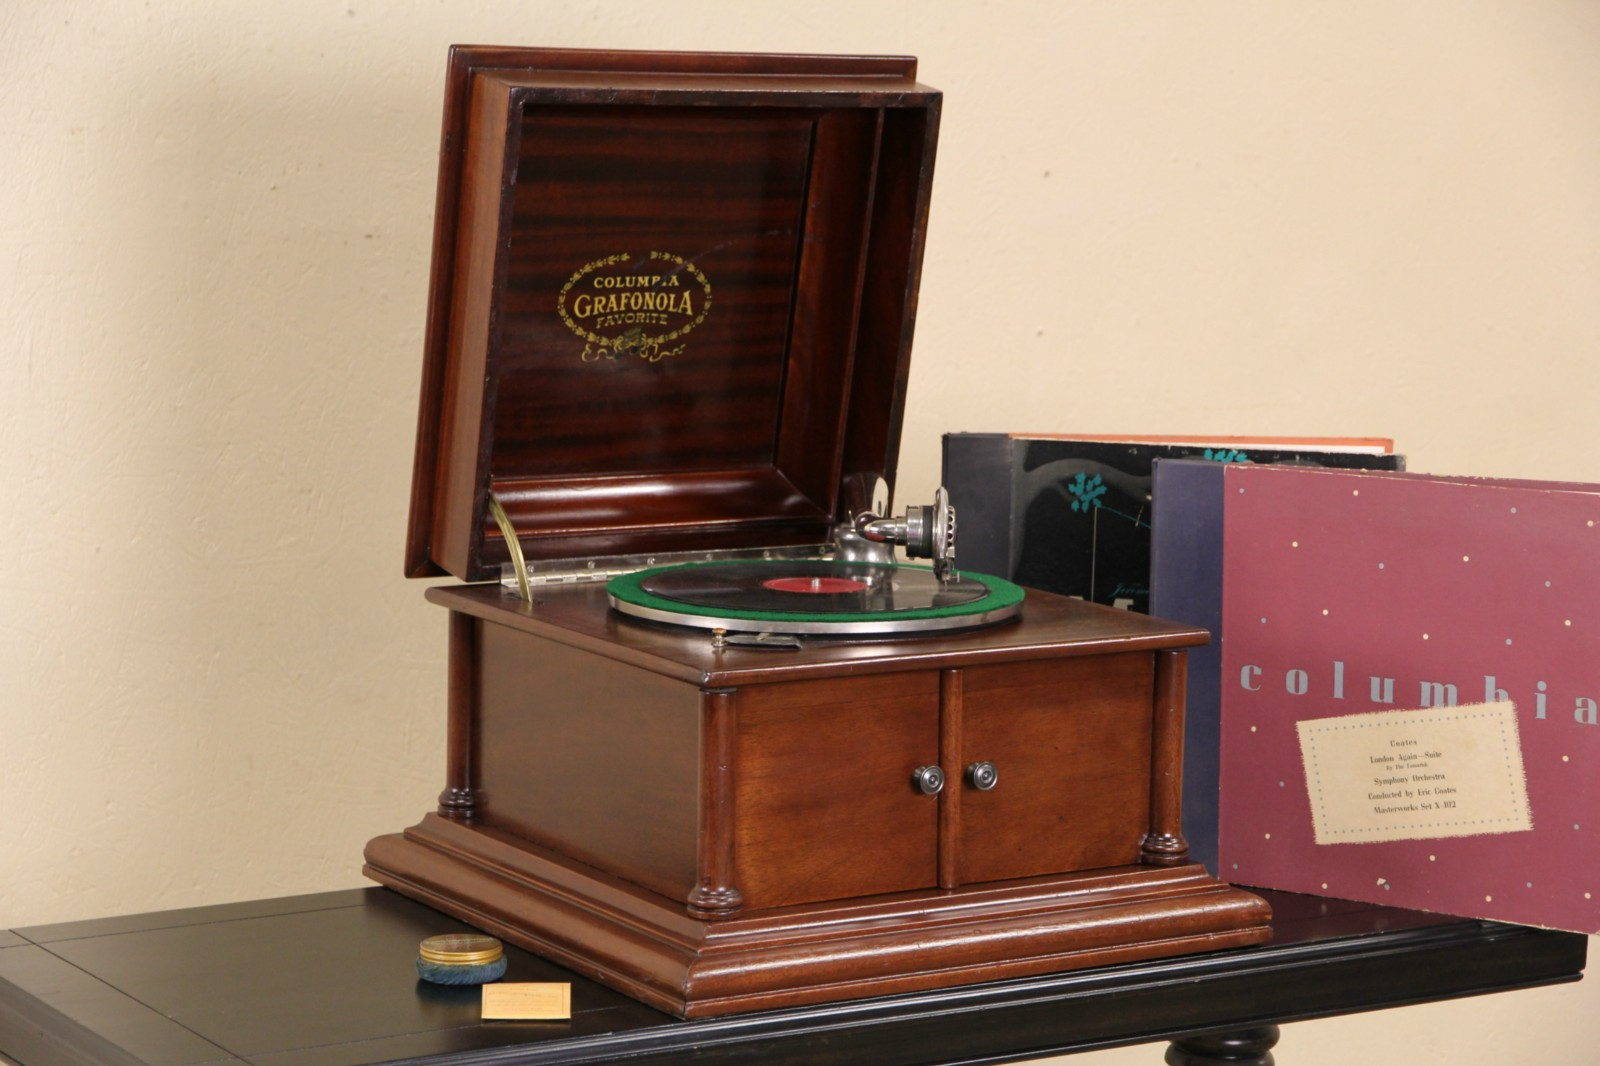 SOLD Columbia Grafonola Record Player Antique 1910 Tabletop Phonograph Harp Gallery